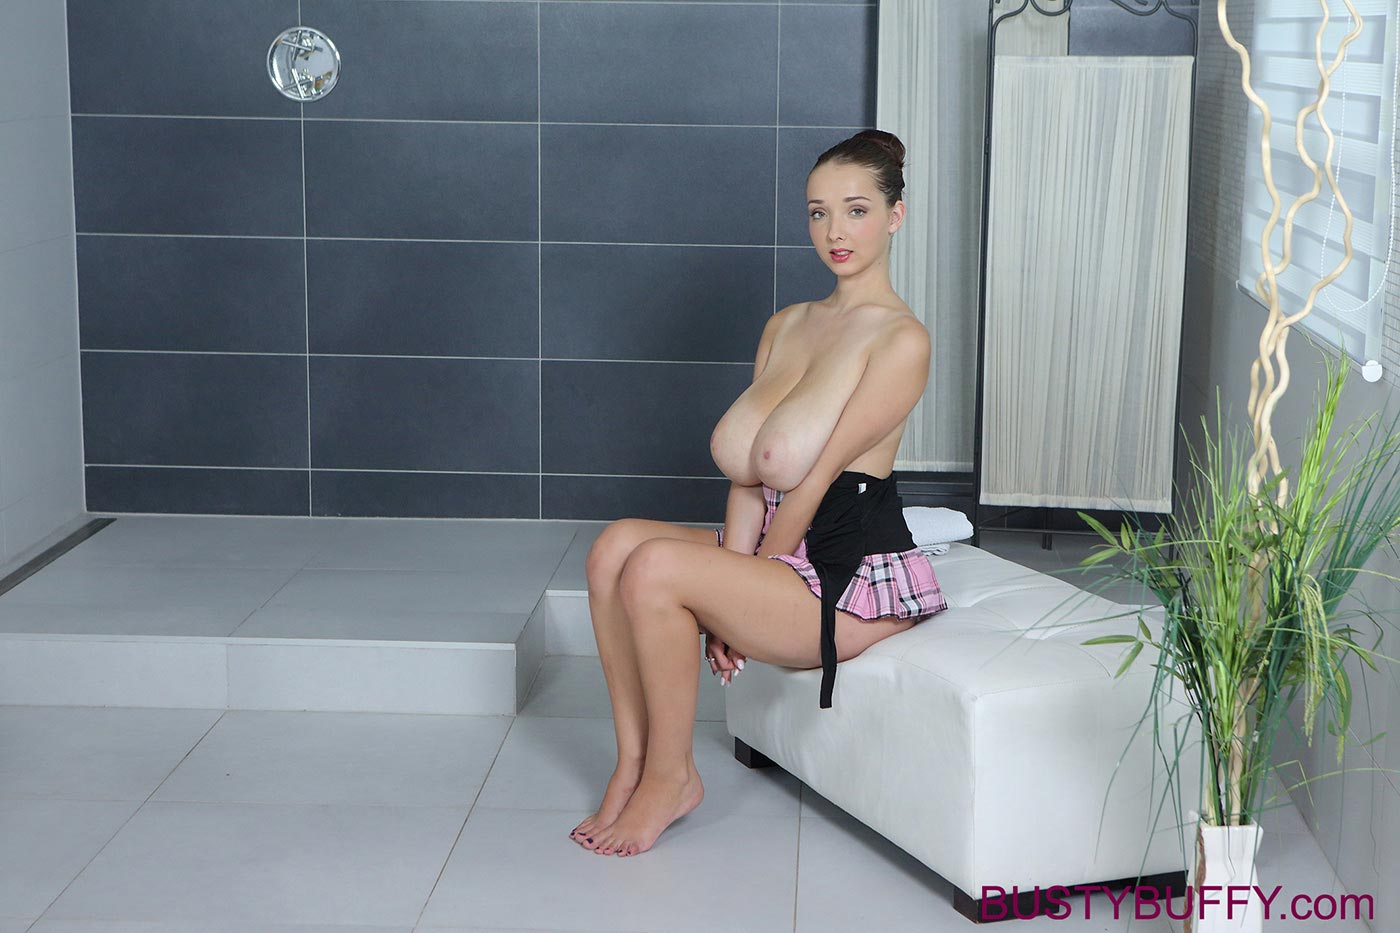 wet-and-oily-busty-buffy-massaging-her-big-naturals03